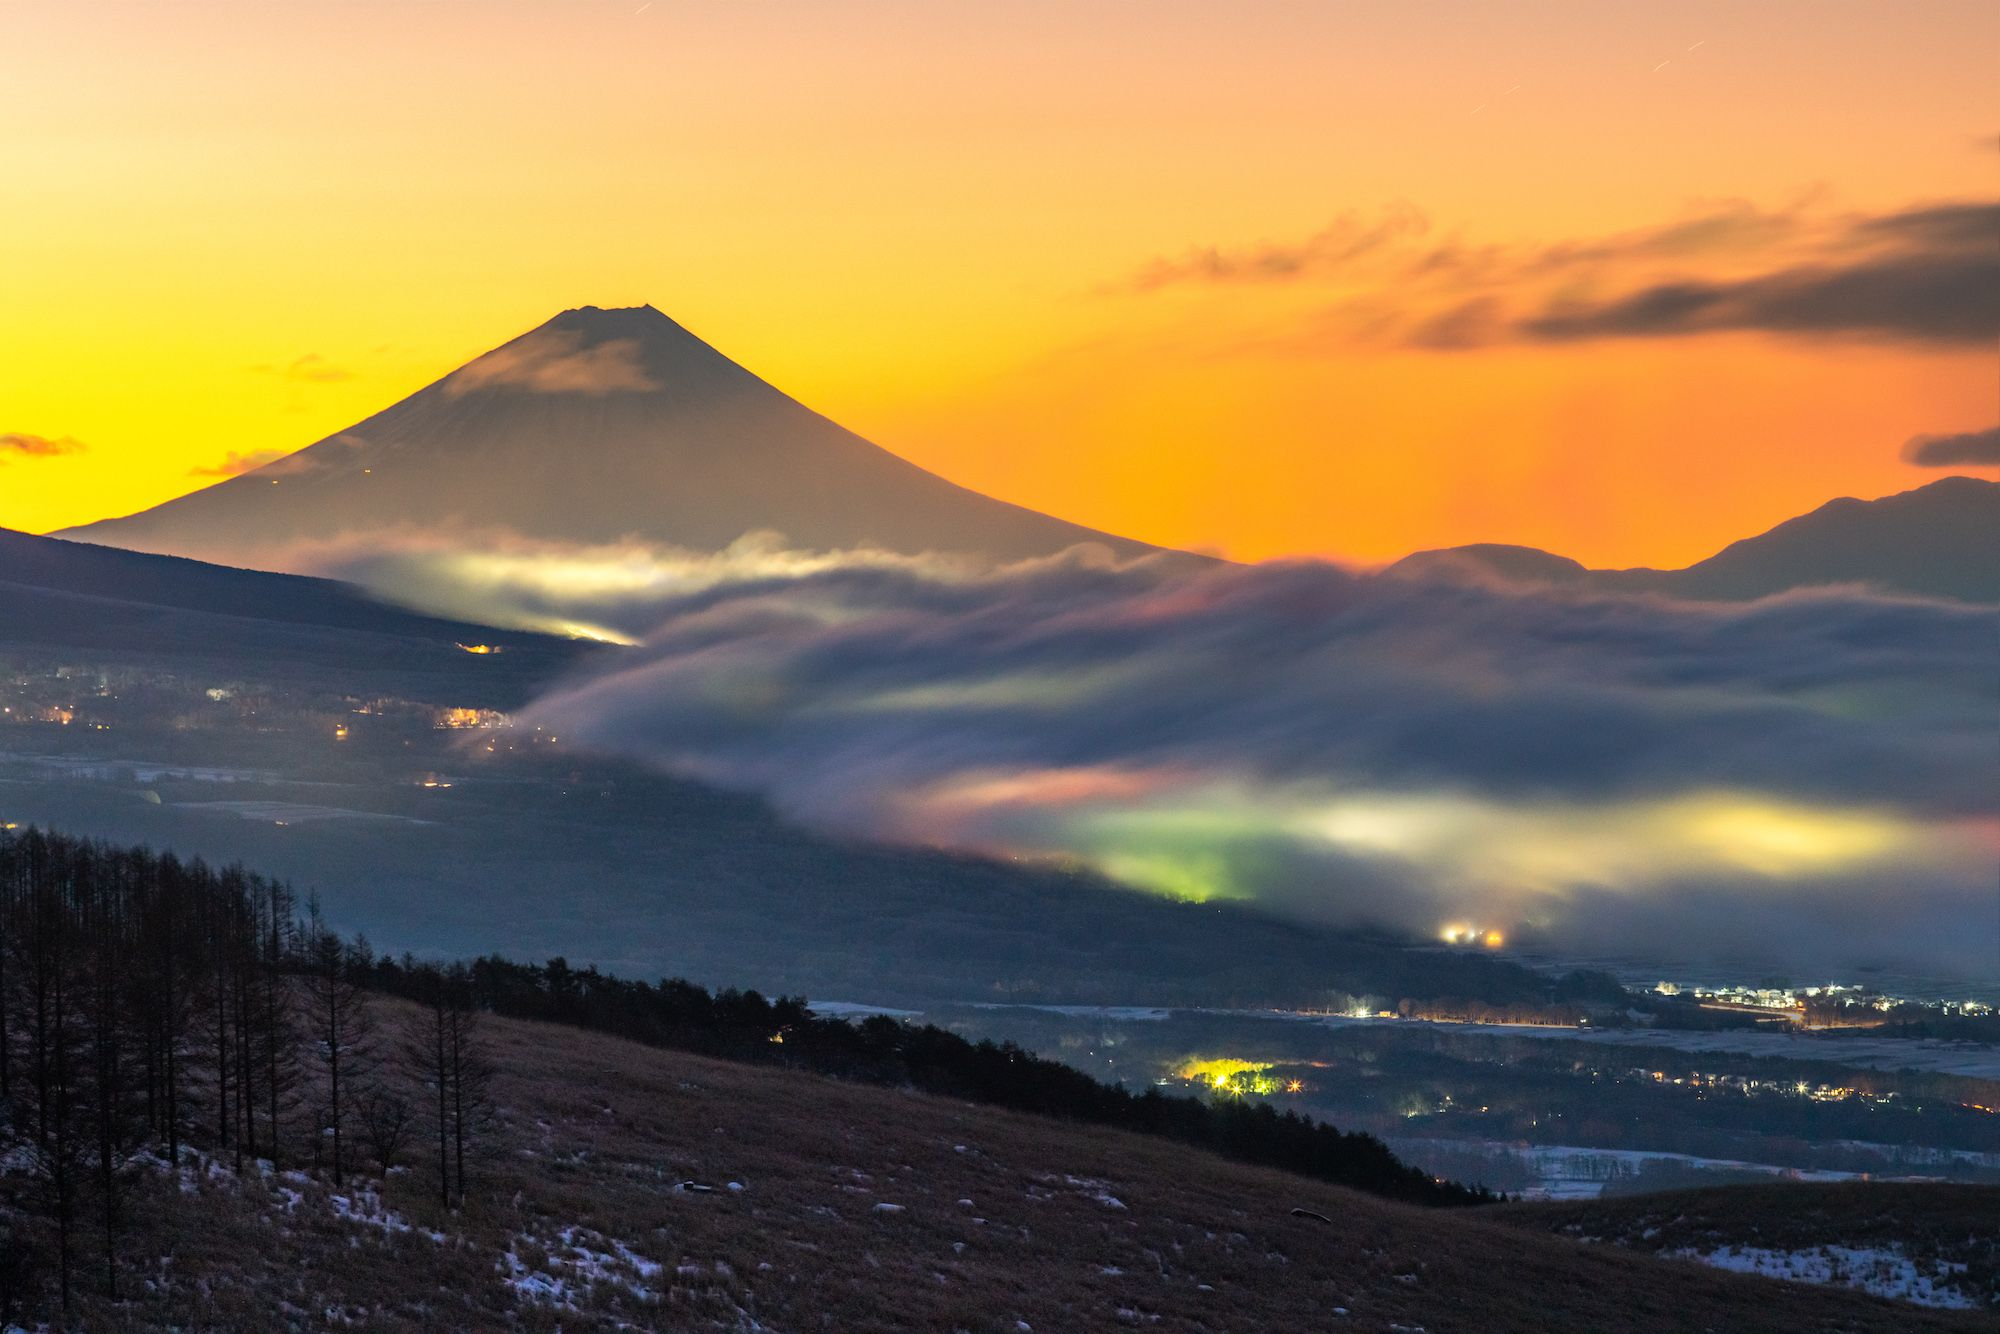 Photo by : Shinji Kuwayama . Follow us for amazing posts! #PASHADELIC #FUJIdelic . . #sony #ilce7rm3 #mtfuji #fujiyama #fujisan #photography #photooftheday #nature #naturephotography #landscape #landscapephotography #japan #japan_of_insta #japanphoto #igers #ig_japan #mountain #mountains #mountainphotography #富士山 #富士 #山